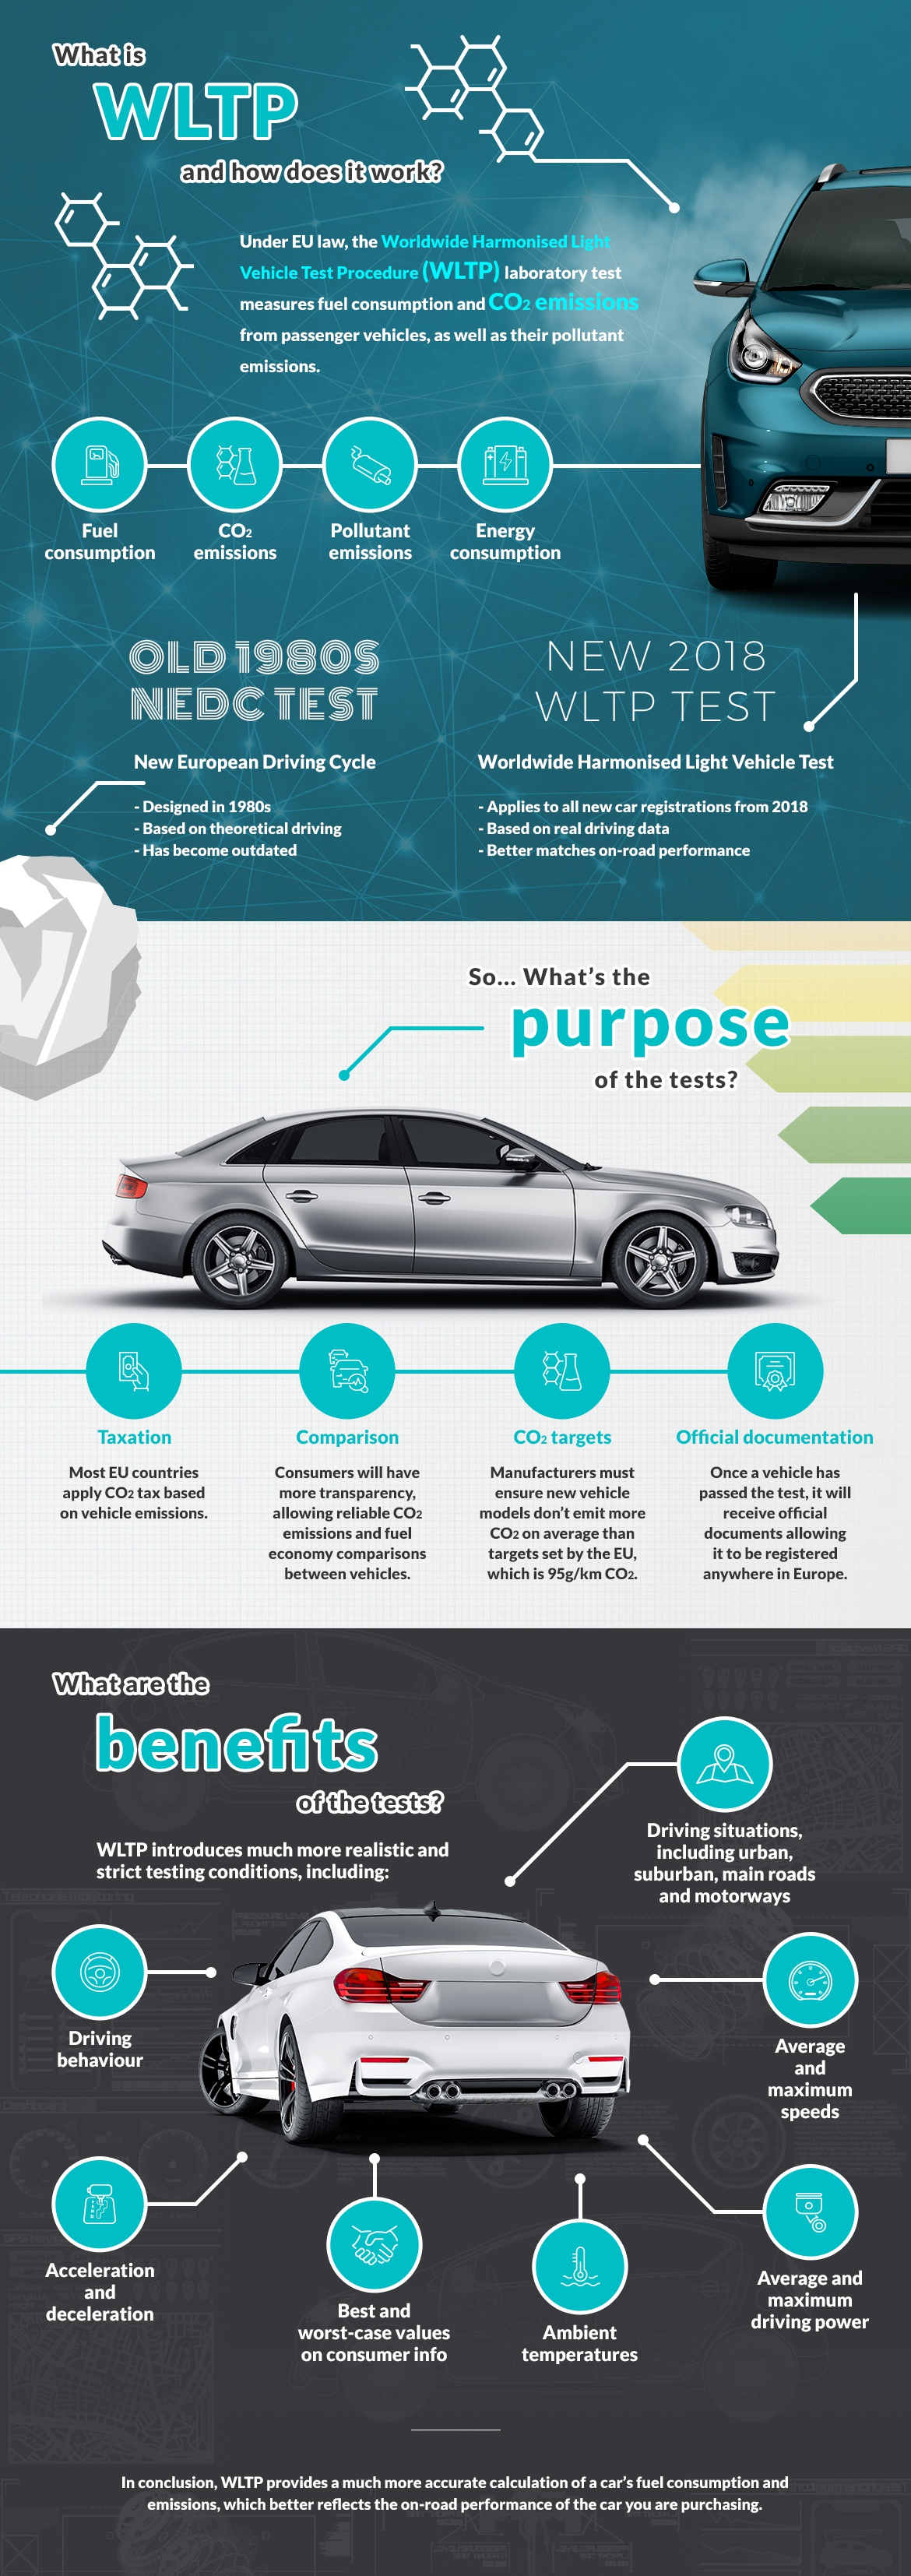 Infographic explaining what WLTP (Worldwide Harmonised Light Vehicle Test Procedure) is.